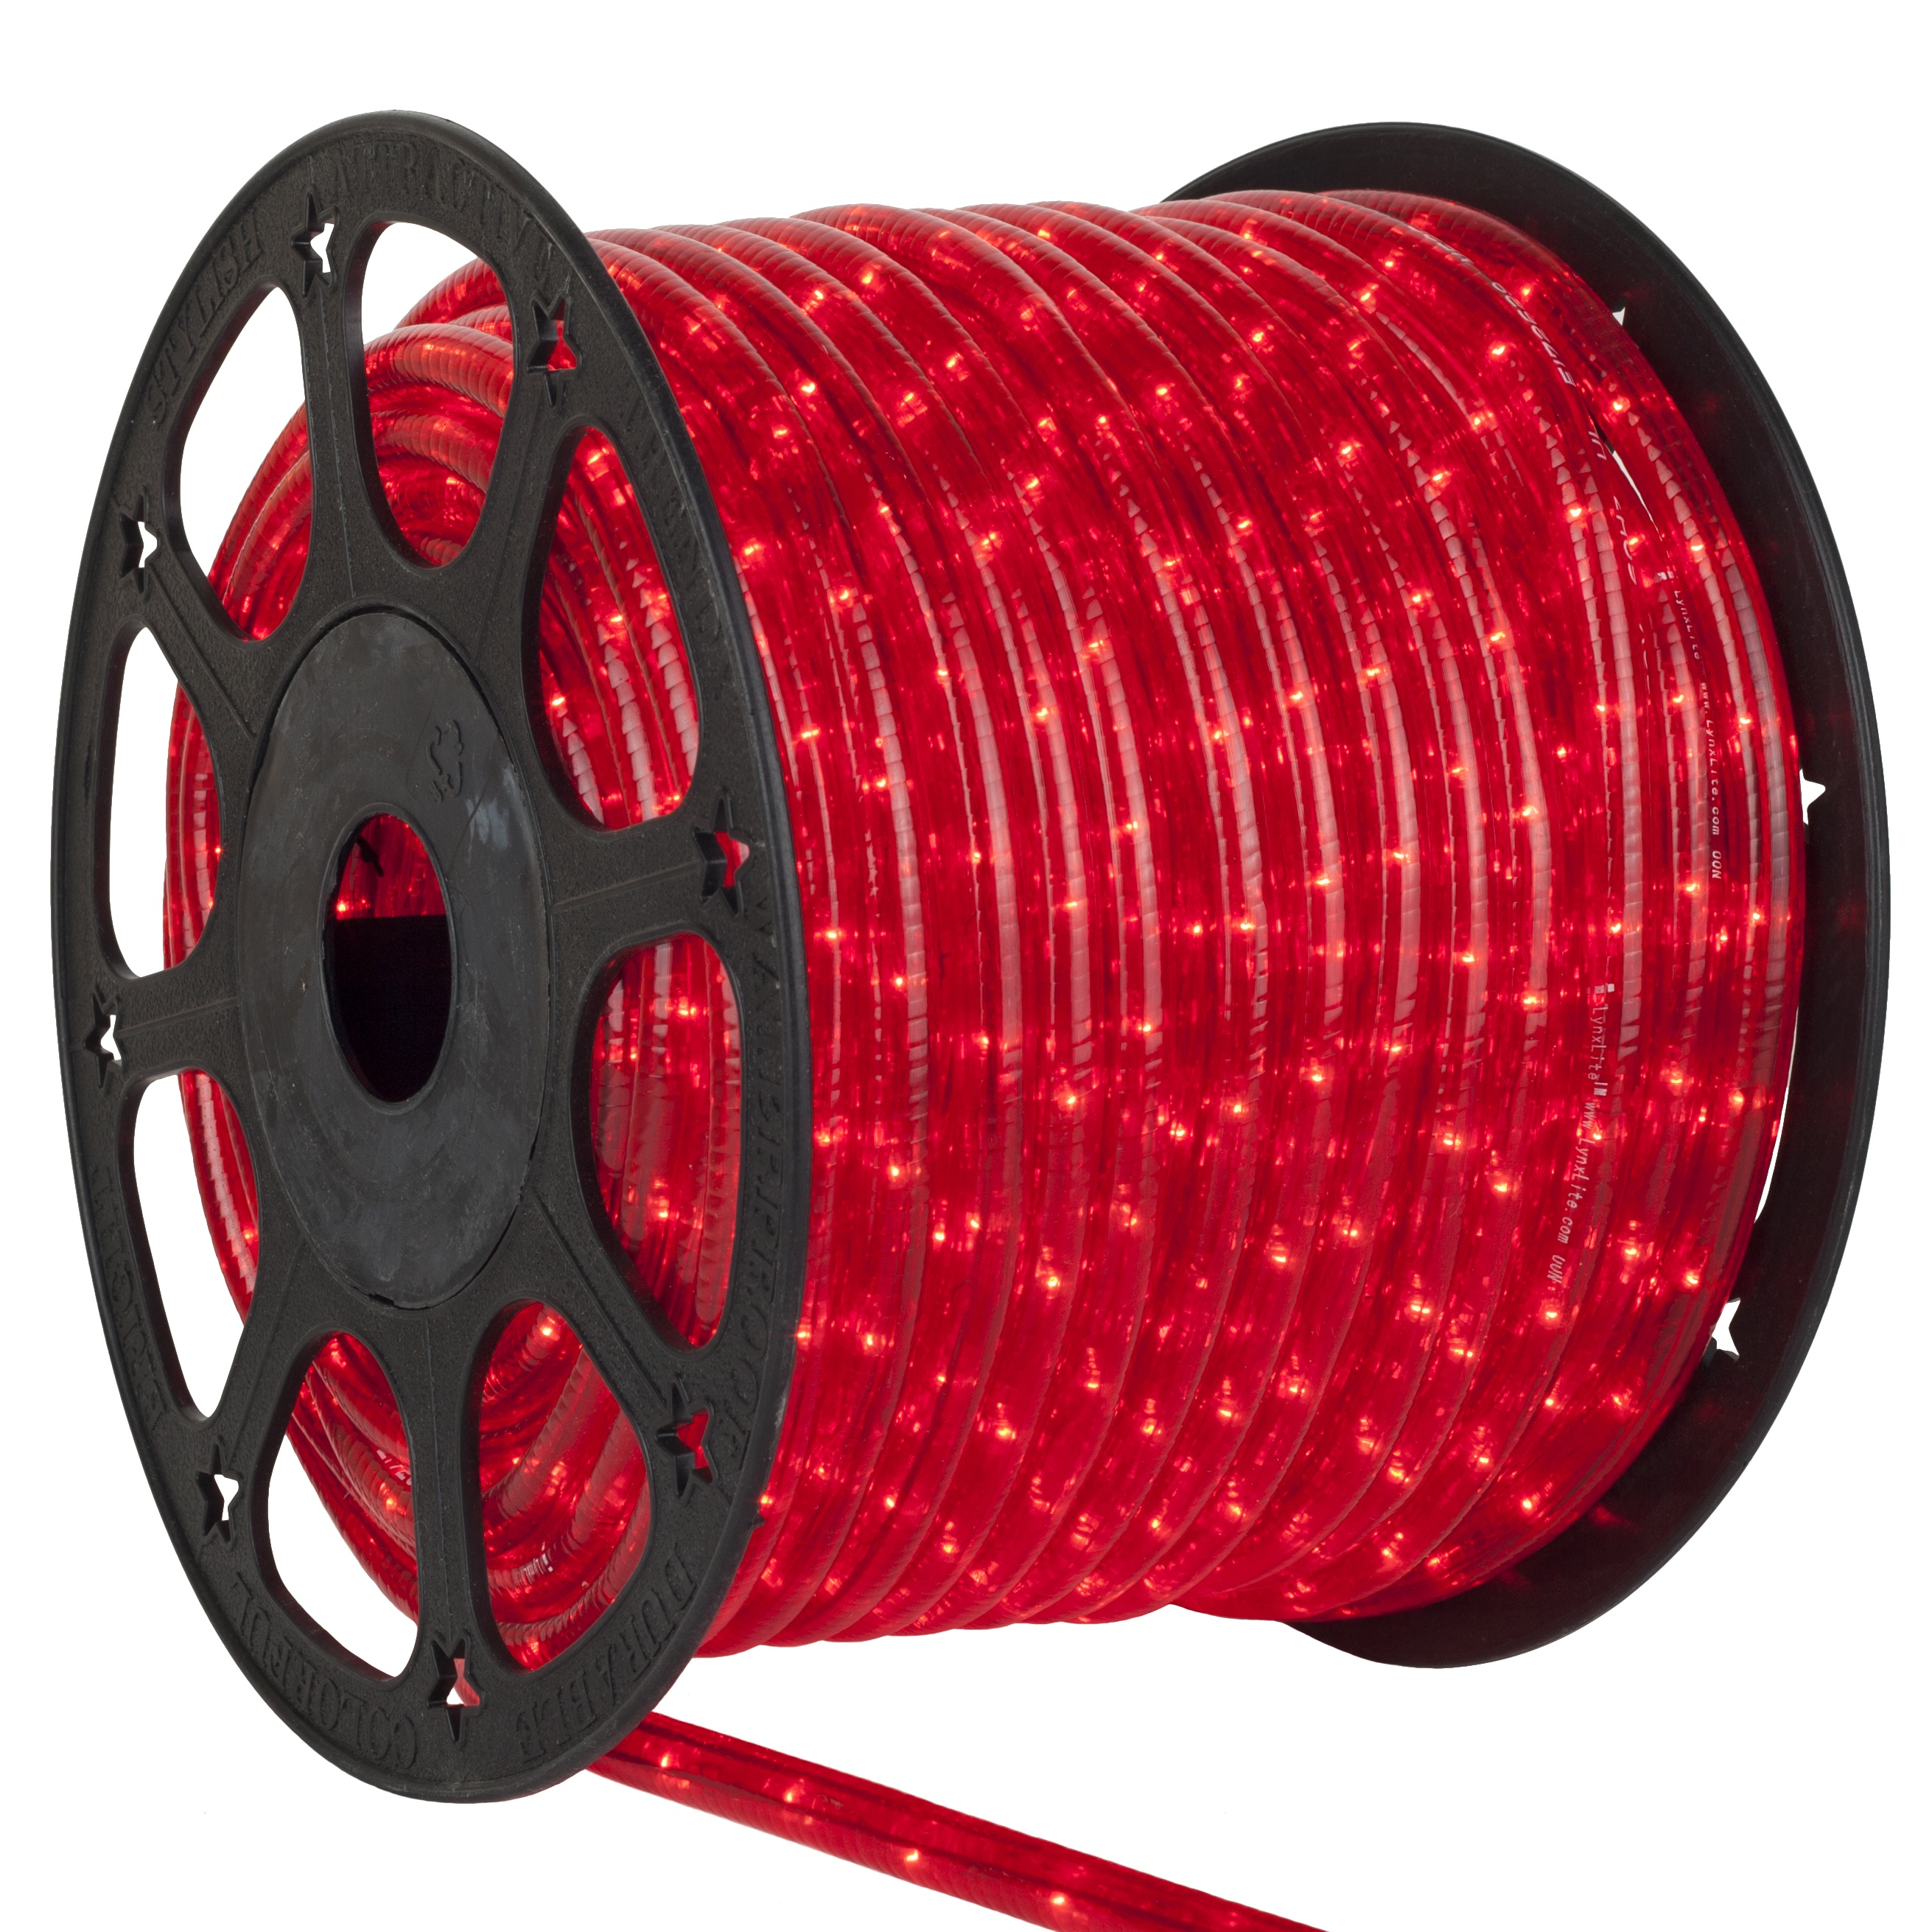 Rope Light  150 Red Mini Rope Light Commercial Spool